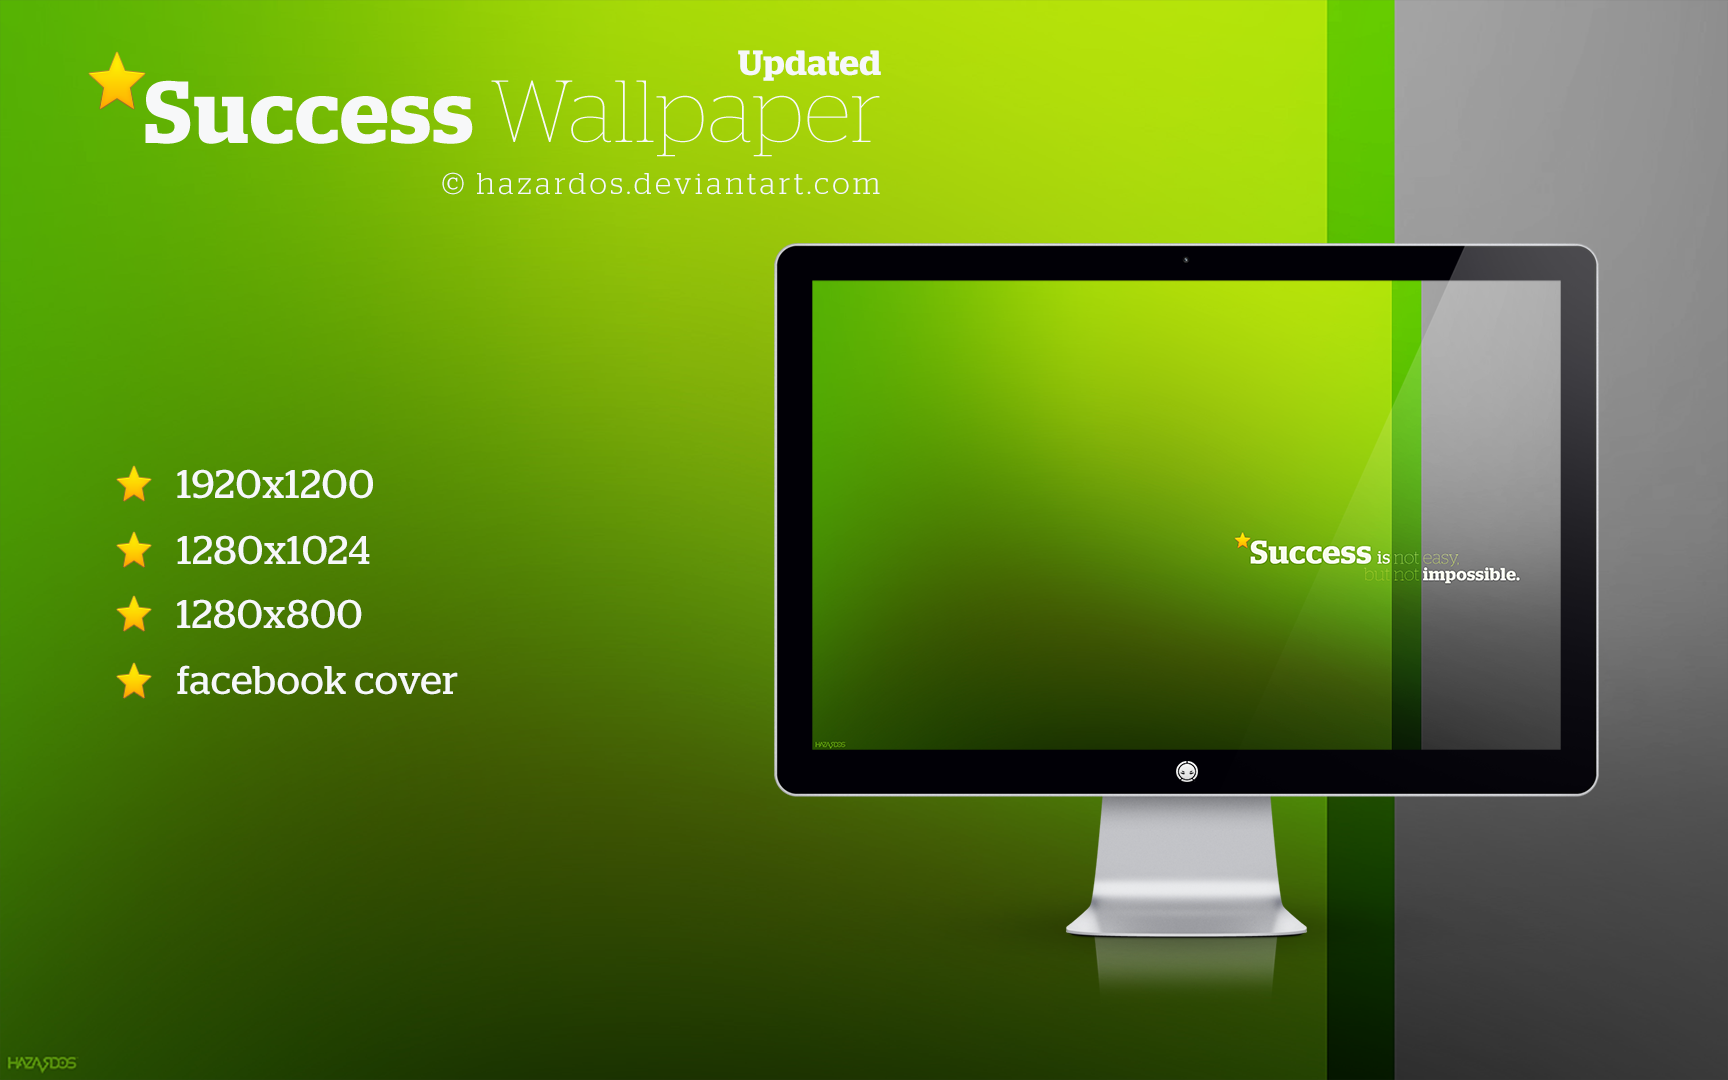 Success Wallpaper Desktop #h38989902, 0.57 Mb